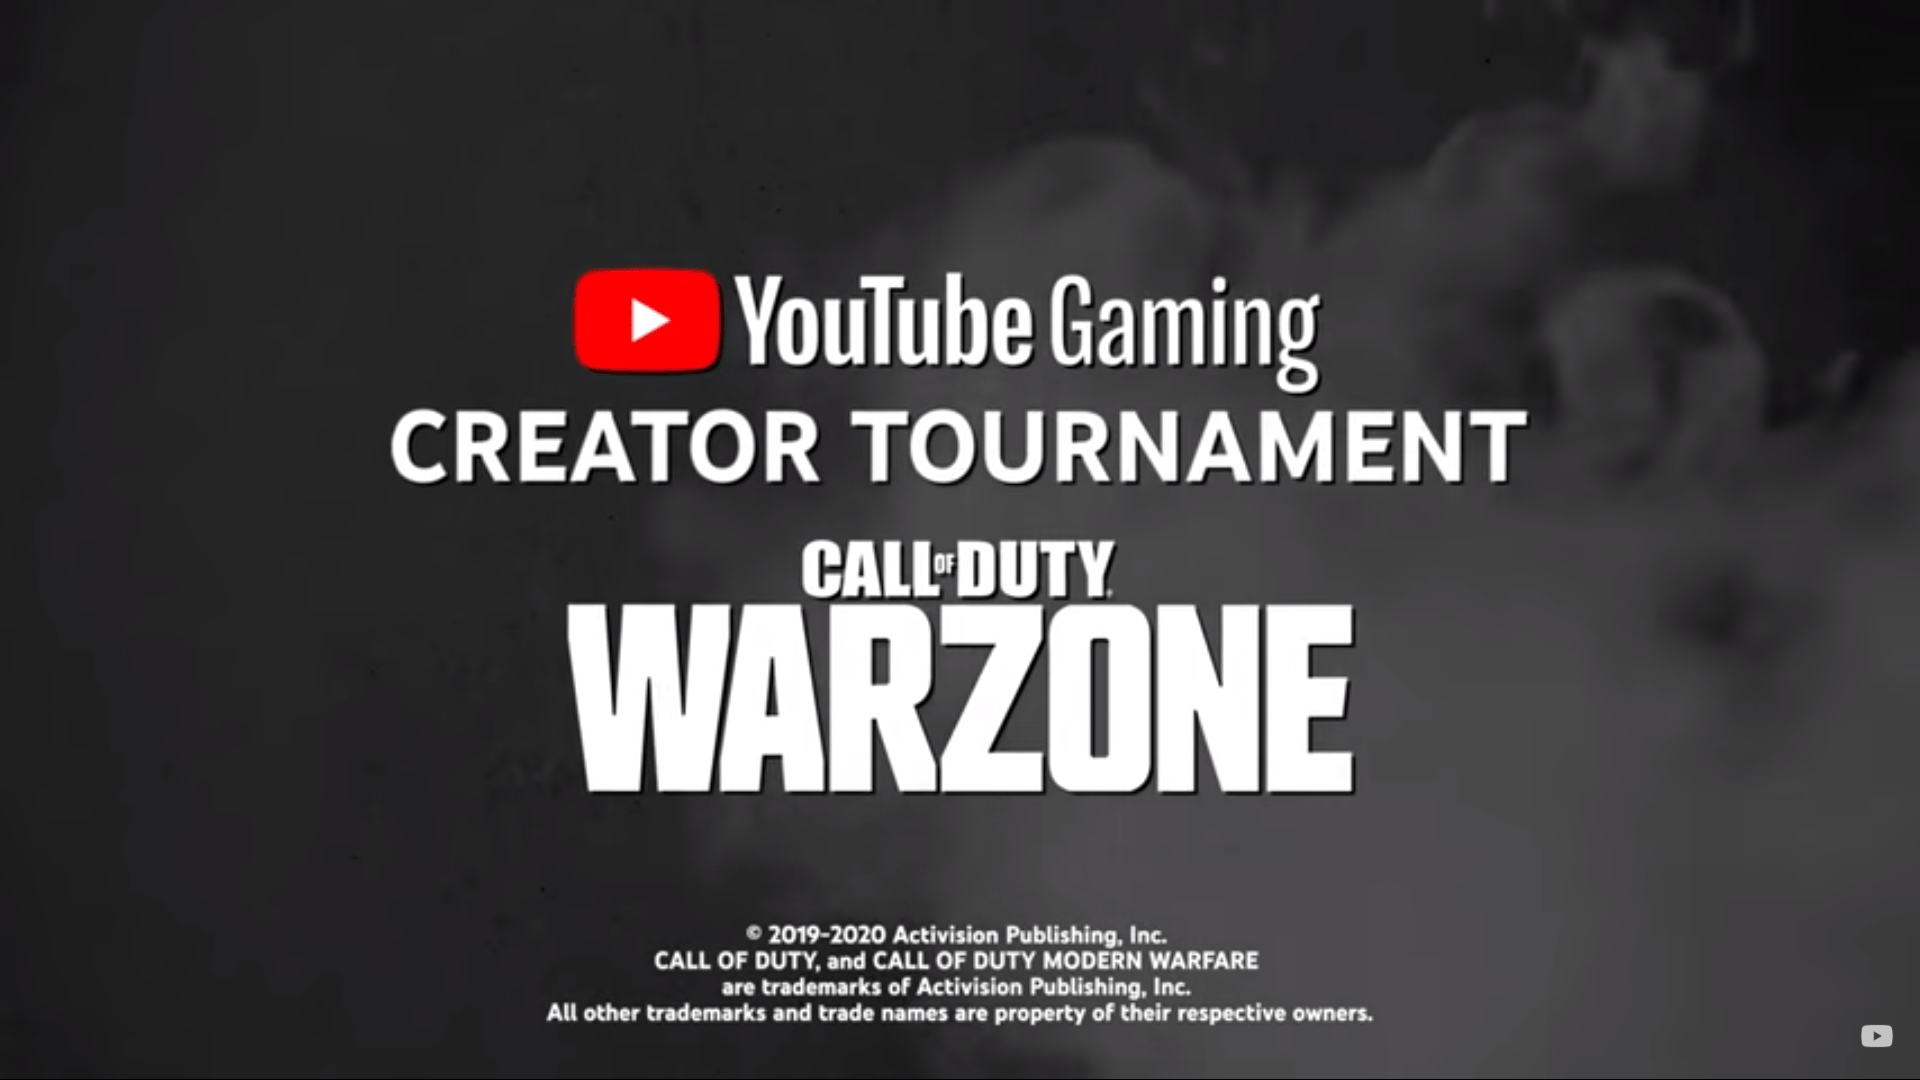 YouTube Gaming Creator Tournament featuring 'Call of Duty': bracket, rules and how to watch